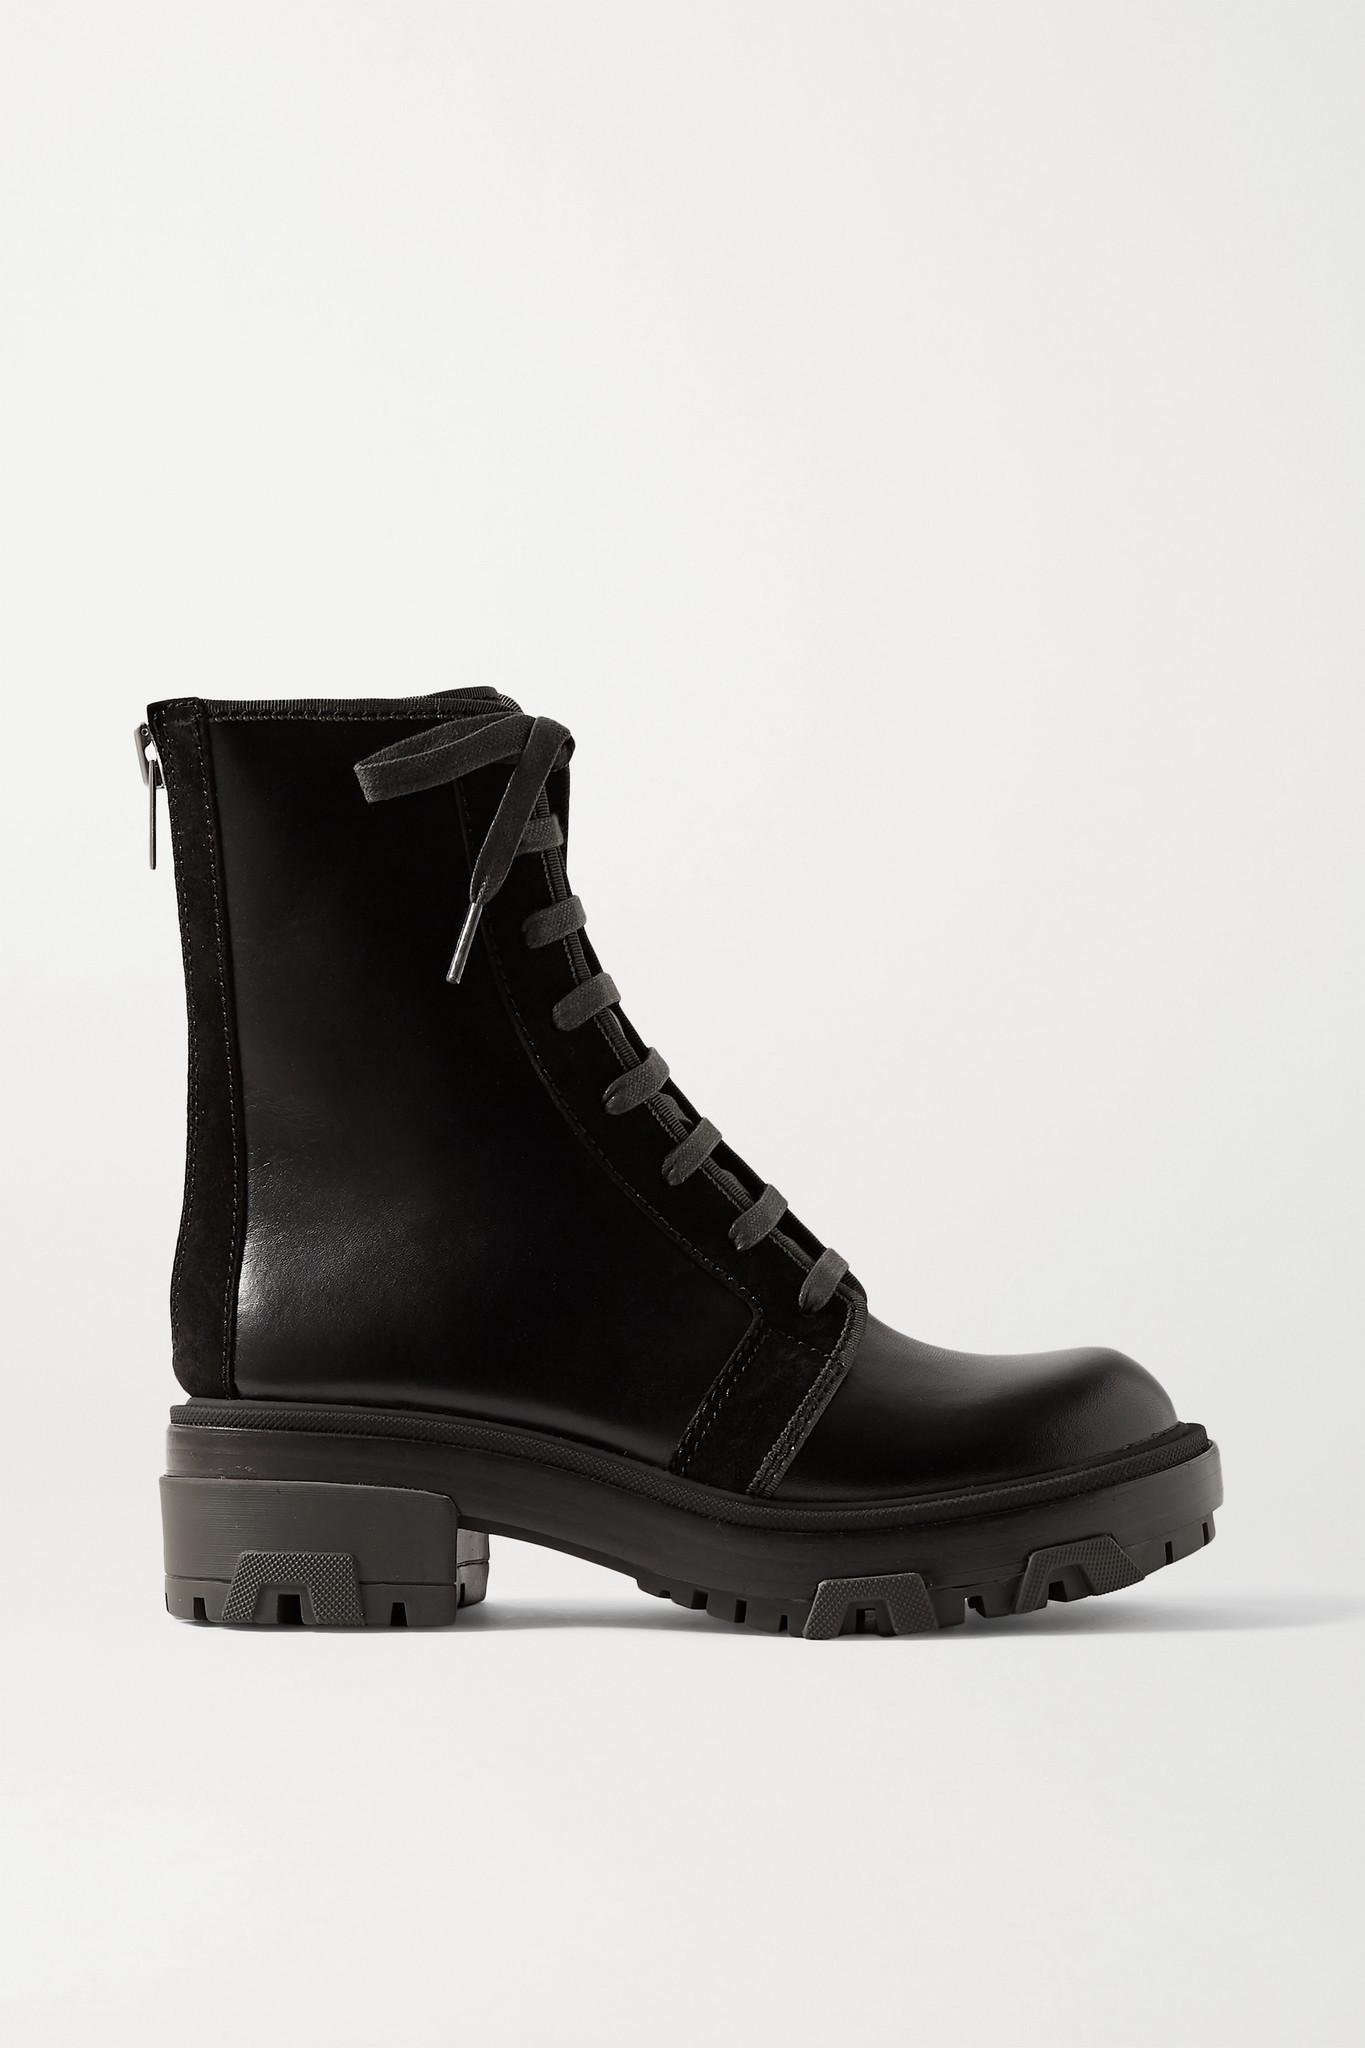 RAG & BONE - Shaye Hiker Suede-trimmed Leather Ankle Boots - Black - IT38